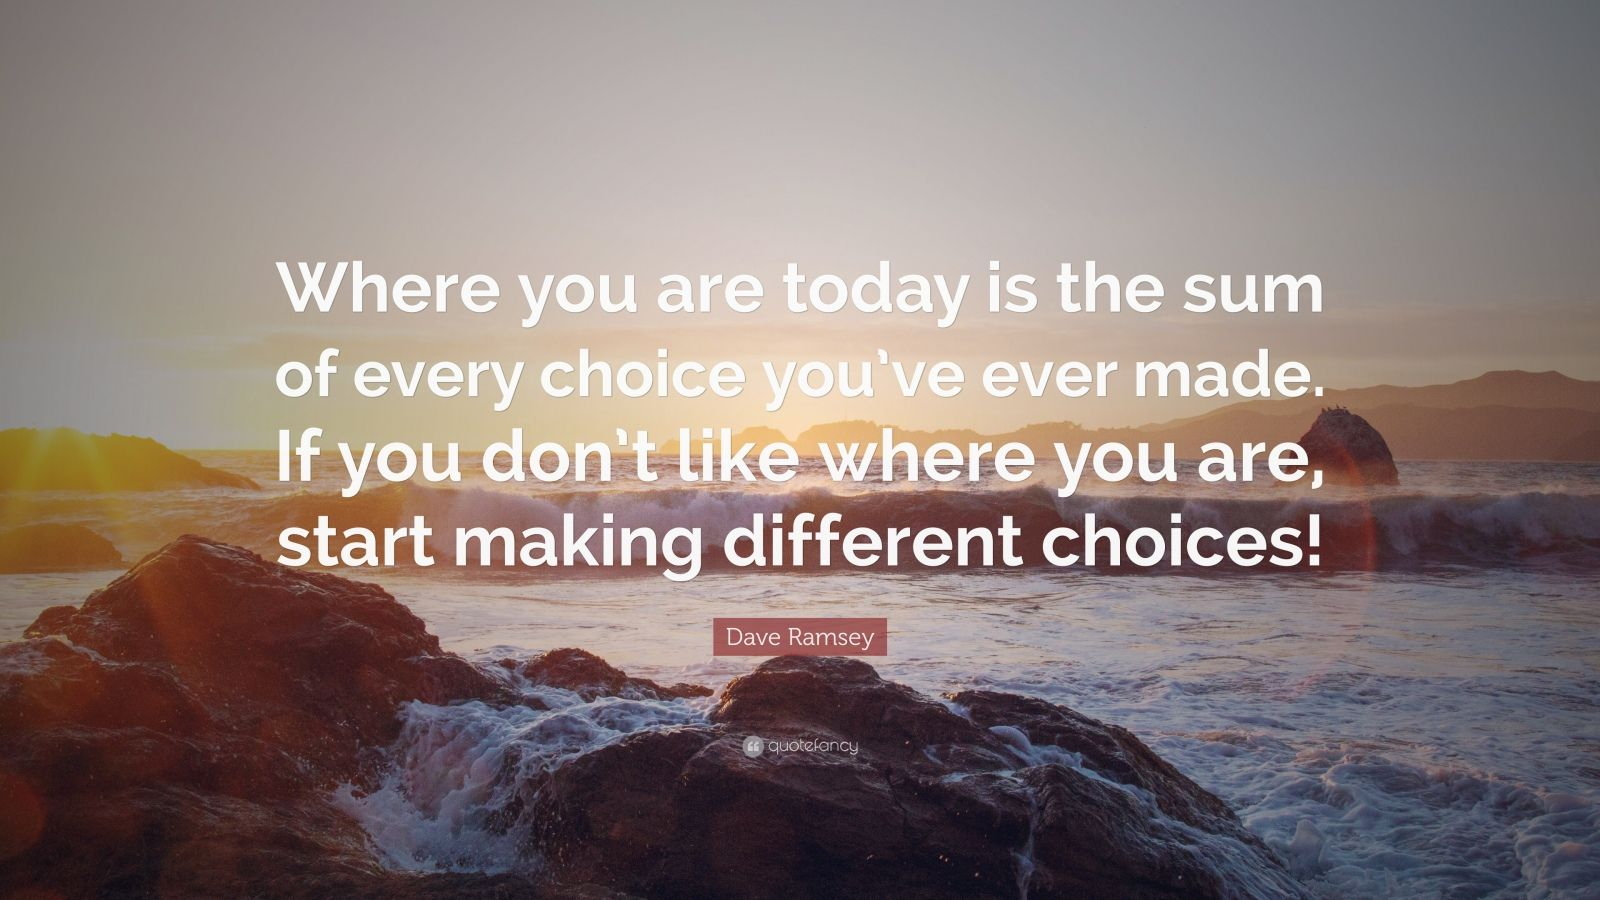 """Dave Ramsey Quote: """"Where you are today is the sum of every choice you've ever made. If you don't like where you are, start making different choices!"""""""